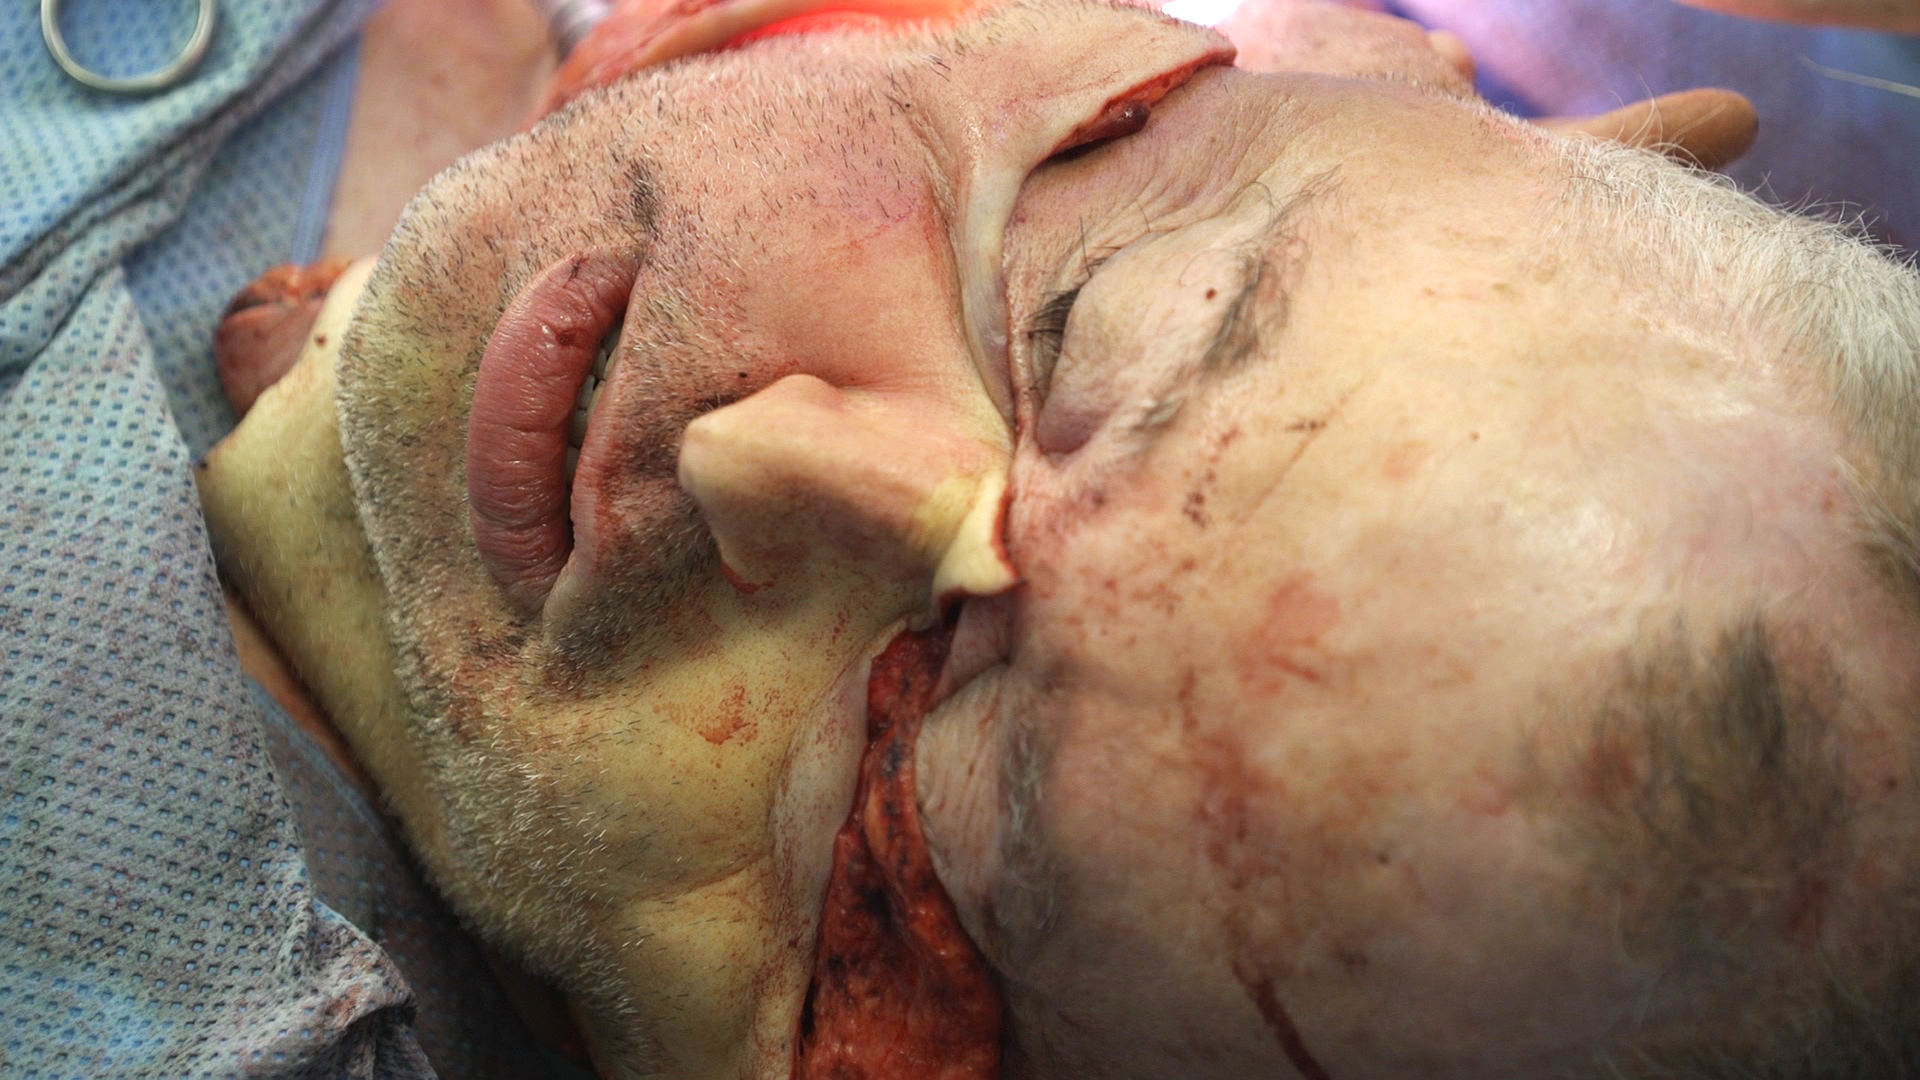 In all, it took 16 hours to prepare Desjardins's face, 12 hours to remove the donor's and 18 hours to transplant the graft. (Michel Riverin/Radio-Canada)